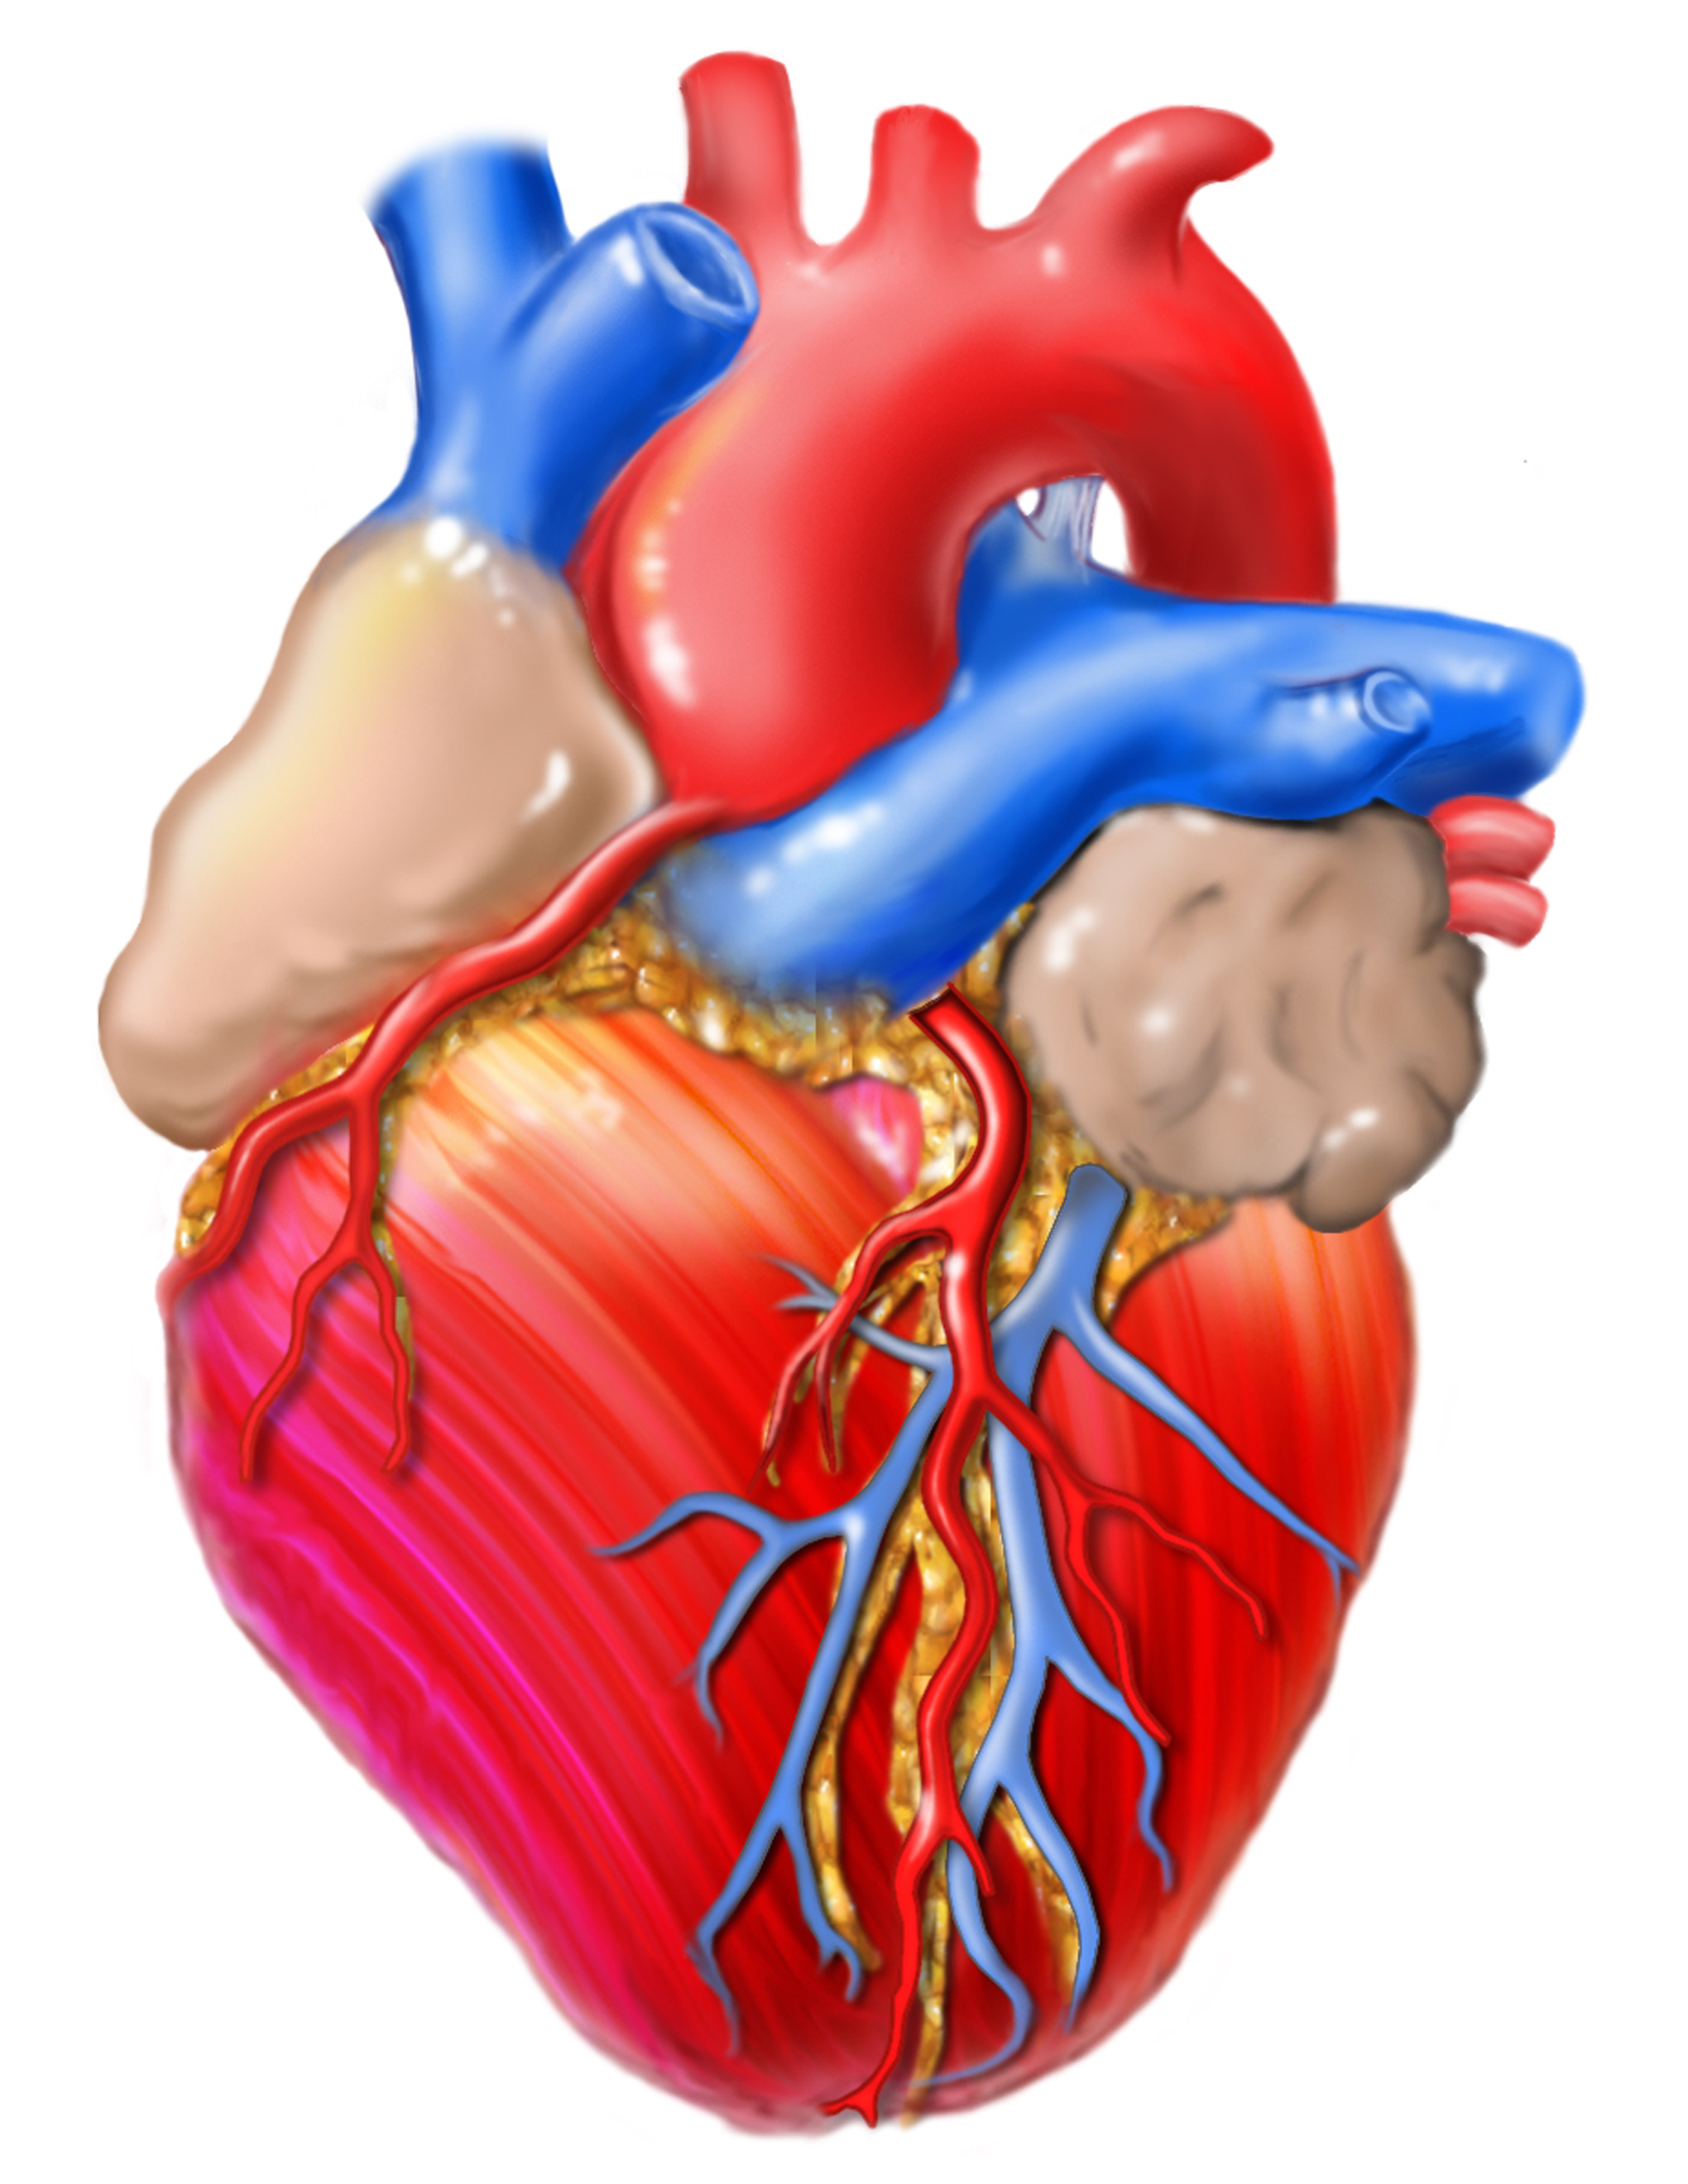 Graphic illustration of a human heart